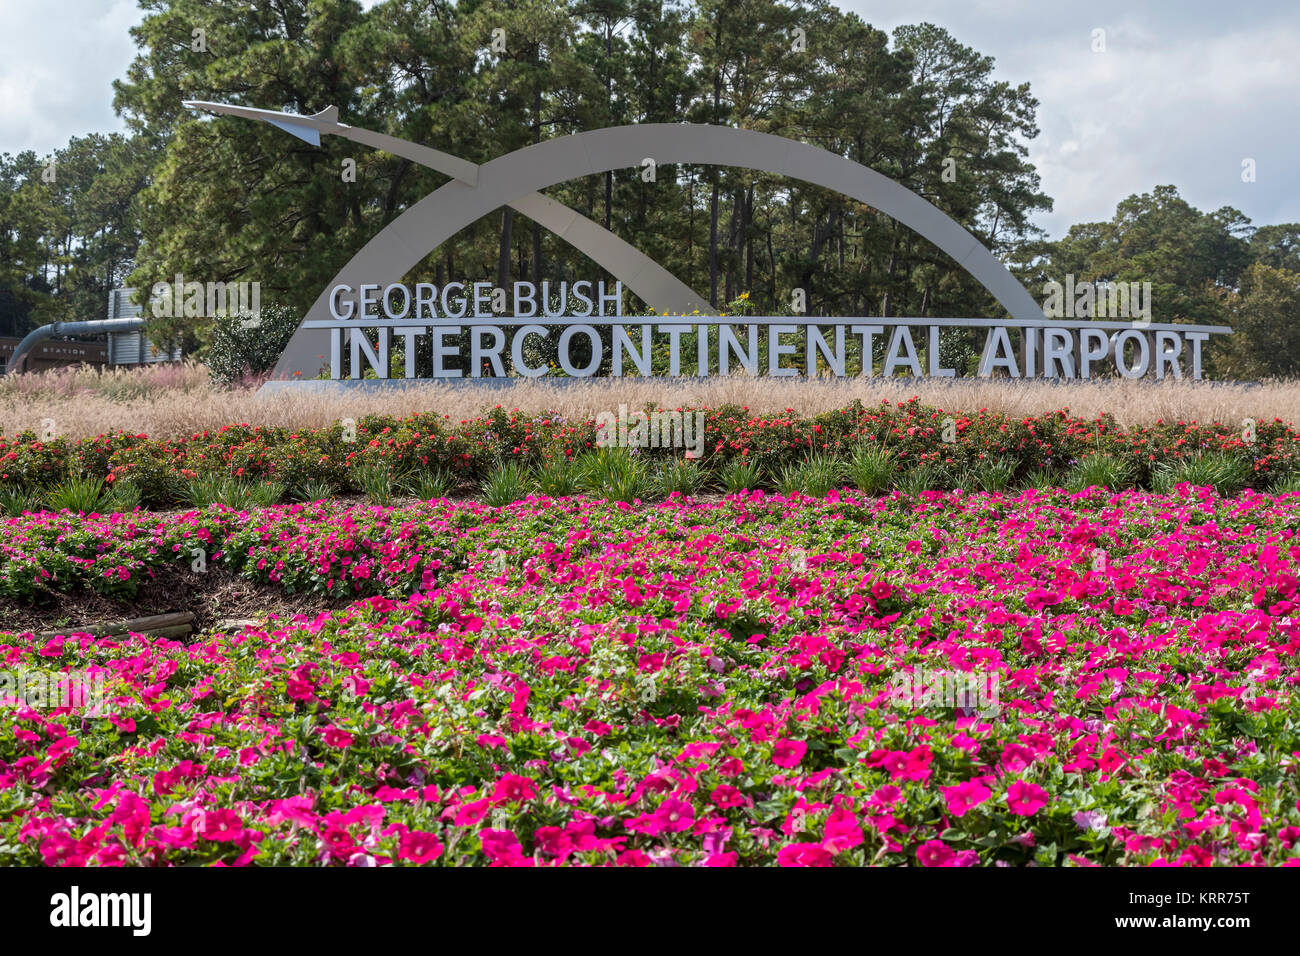 Houston, Texas - The entrance to George Bush Intercontinental Airport. - Stock Image